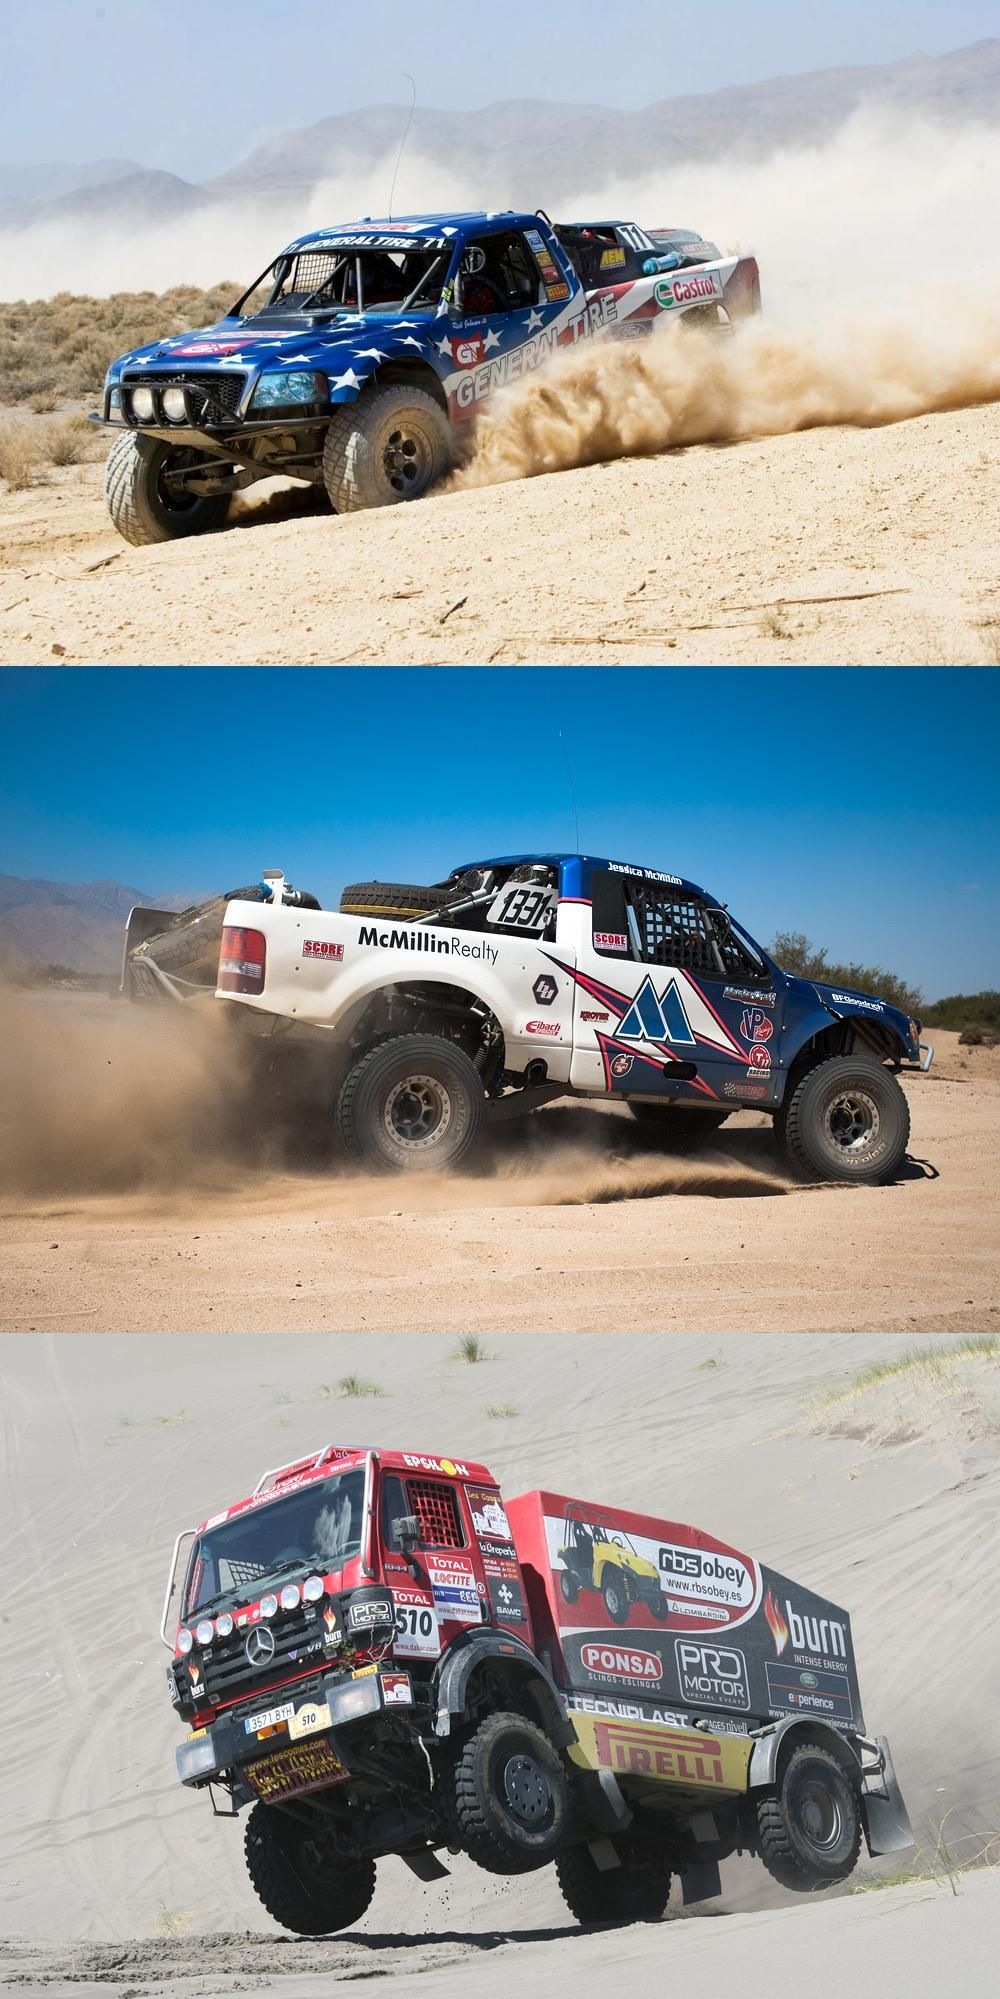 Auto Racing Download 2 688 Wallpapers Page 1 Forwallpaper Com Off Road Truck Racing Trophy Truck Funny Truck Quotes